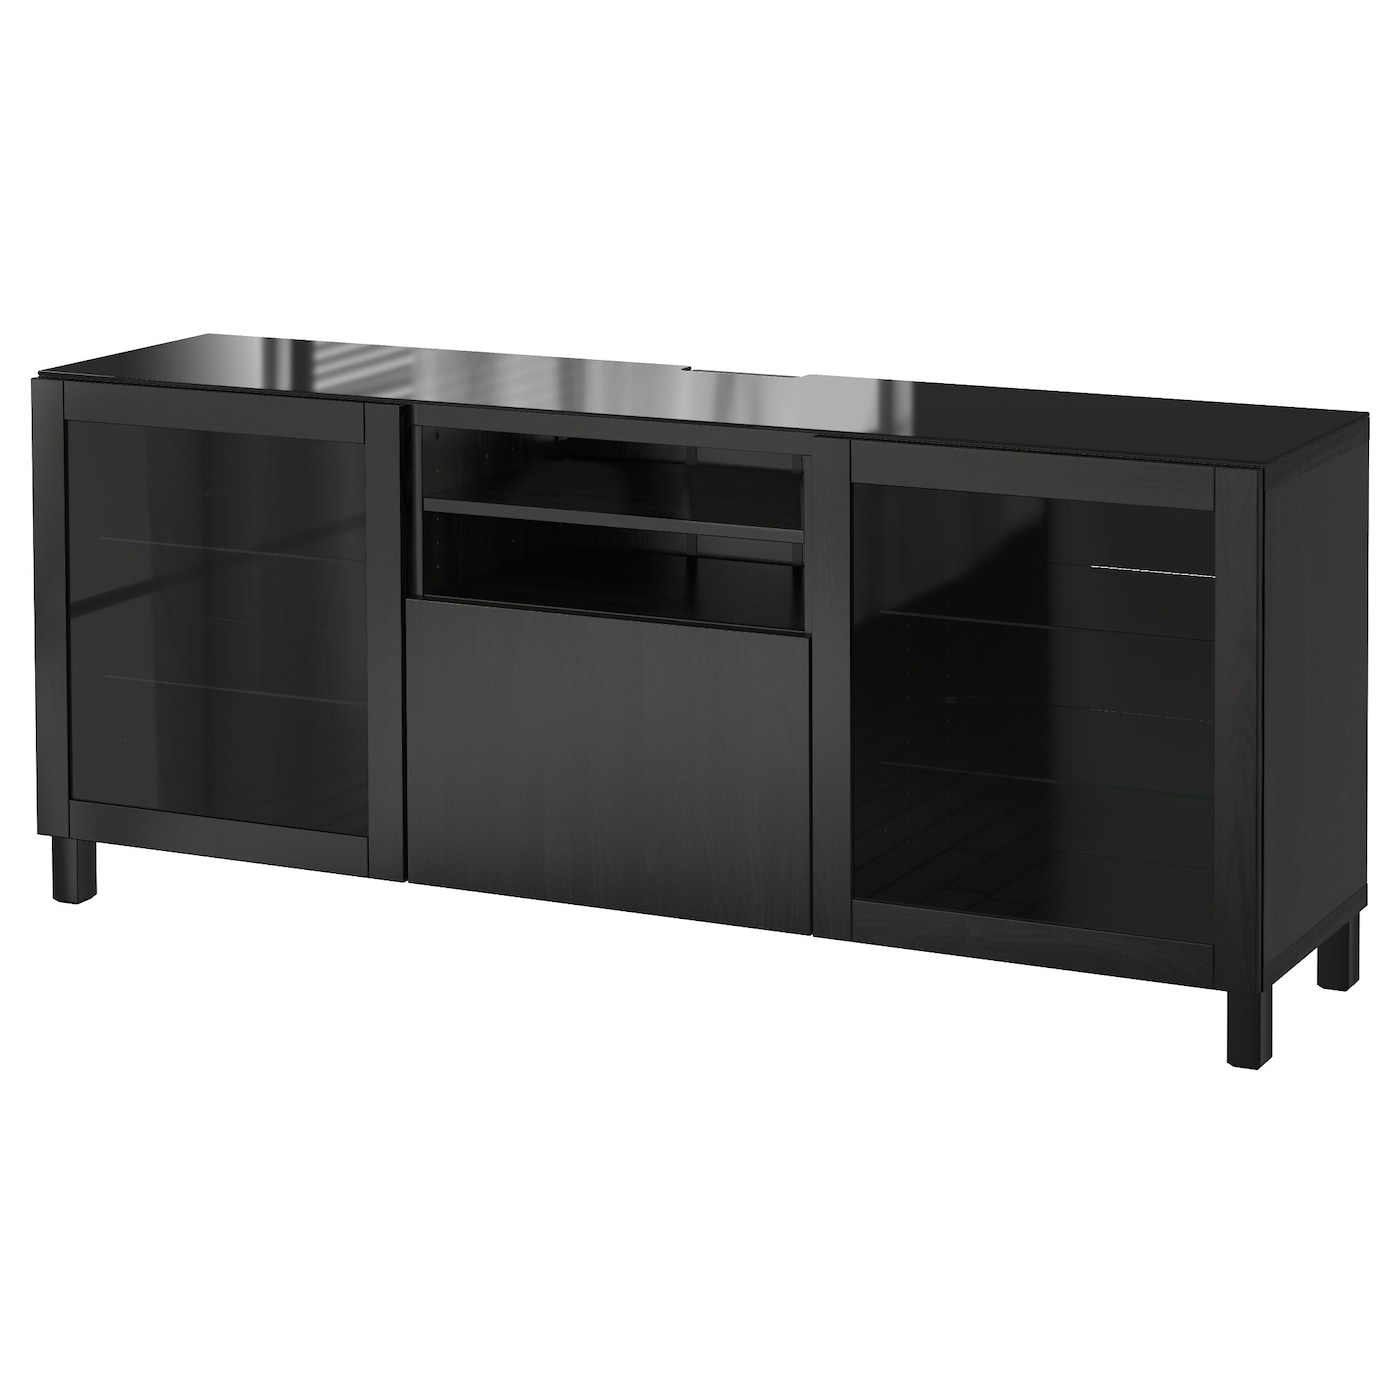 Best Tv Bench Lappviken Sindvik Black Brown Clear Glass 180x40x74 Cm Ikea